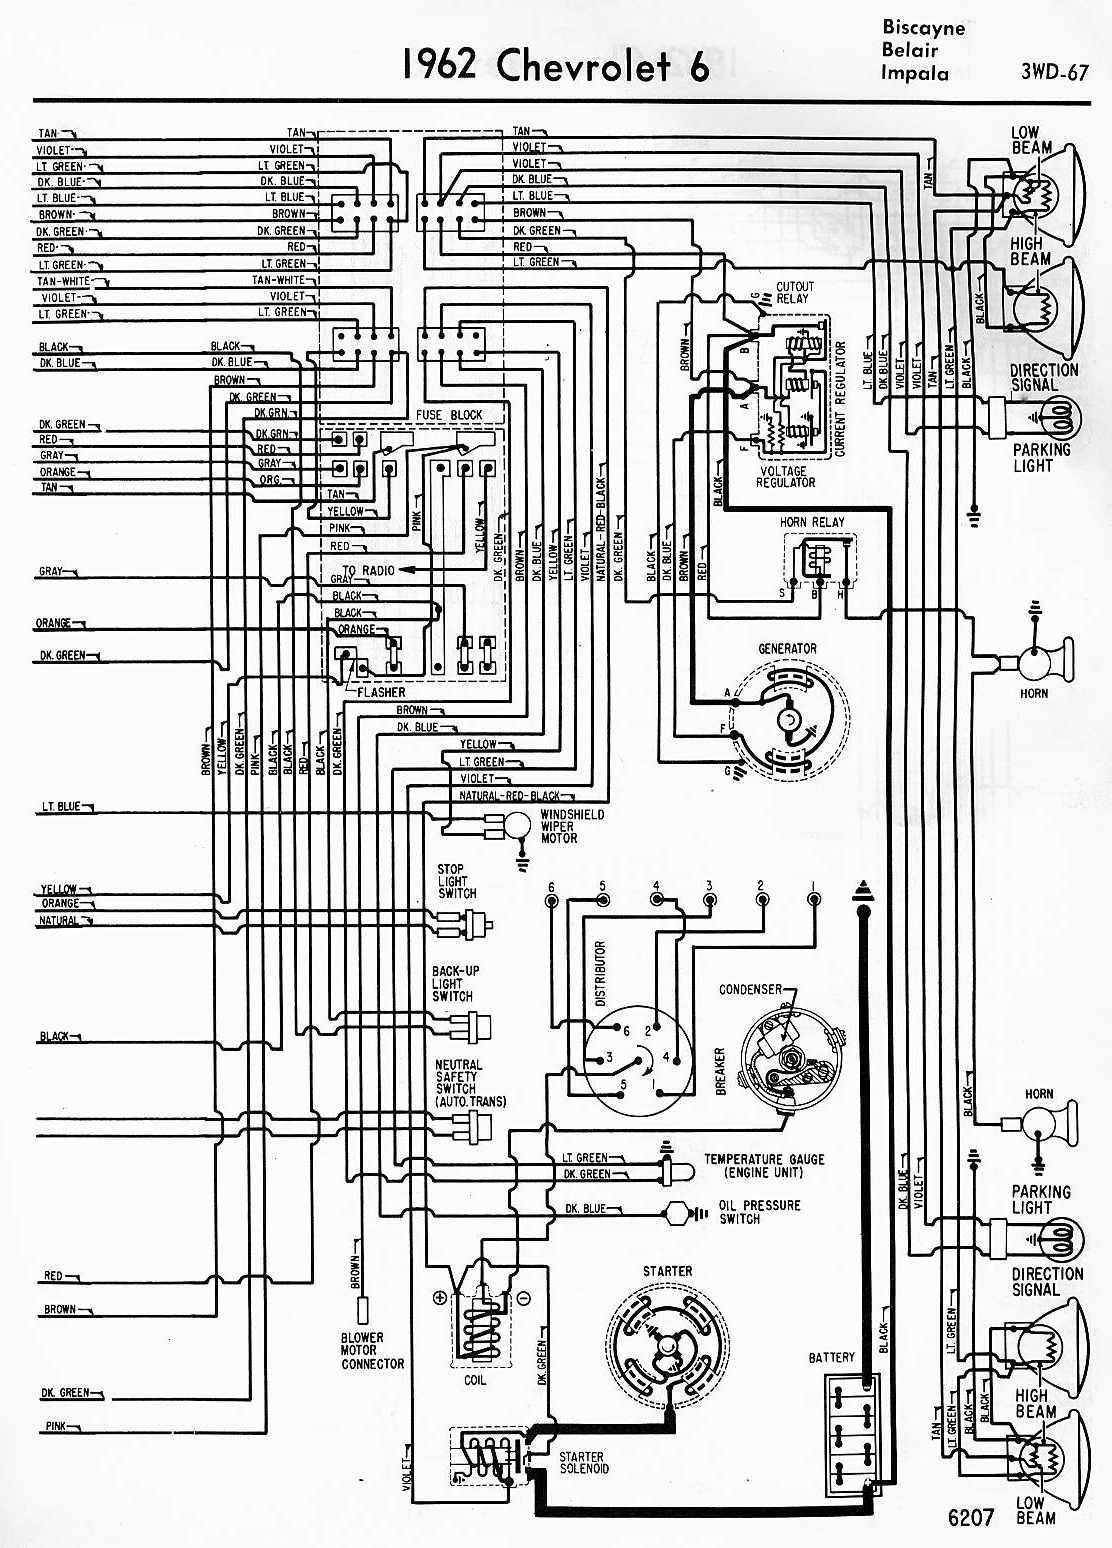 Fine Circuit Diagram As Well Corvette Wiper Motor Wiring Diagram On Wiring Digital Resources Cettecompassionincorg